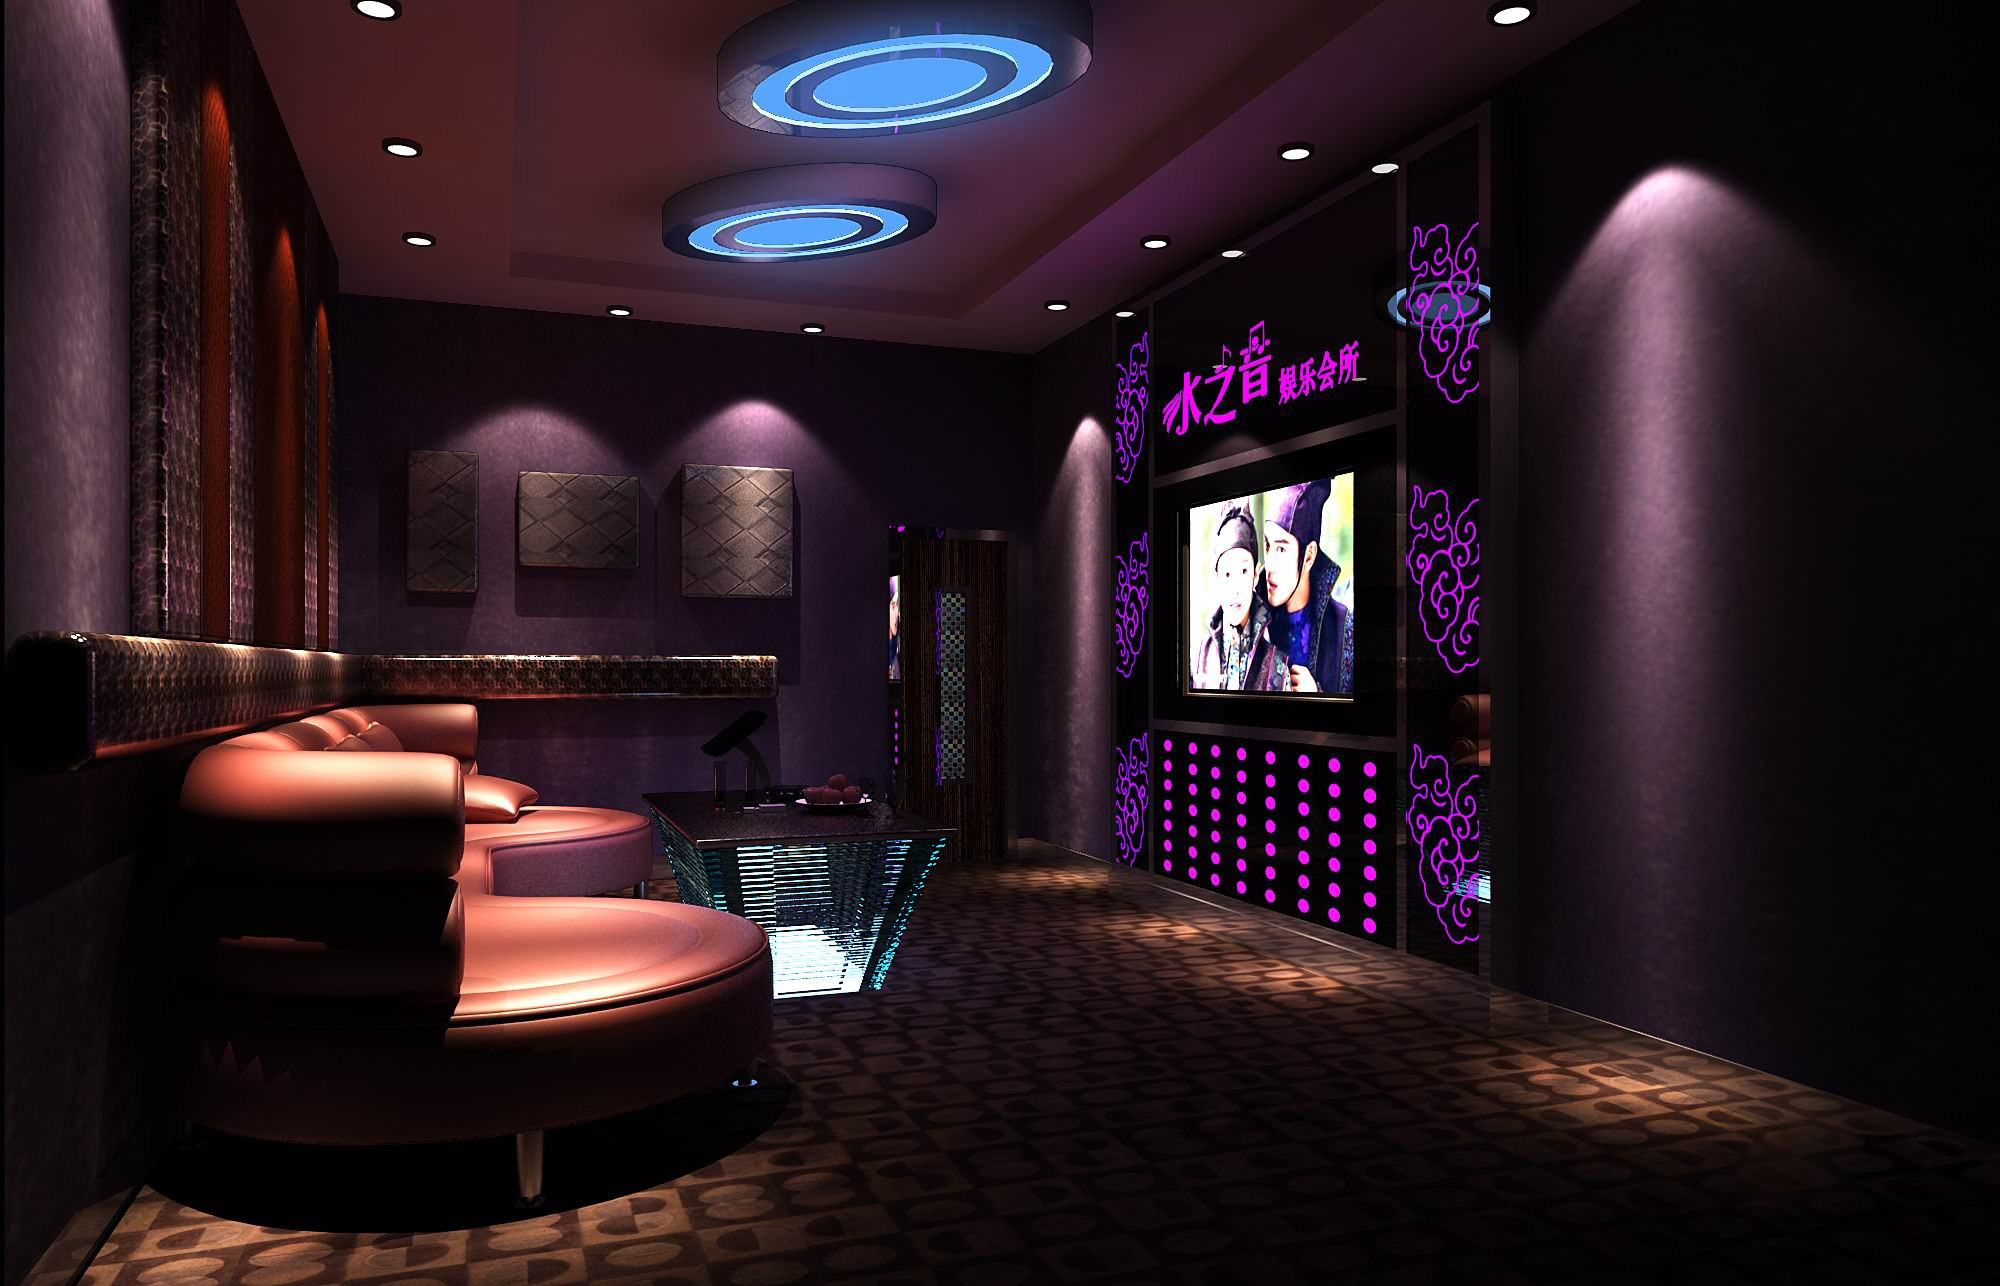 Luxurious restaurant vip lounge with tv d model max